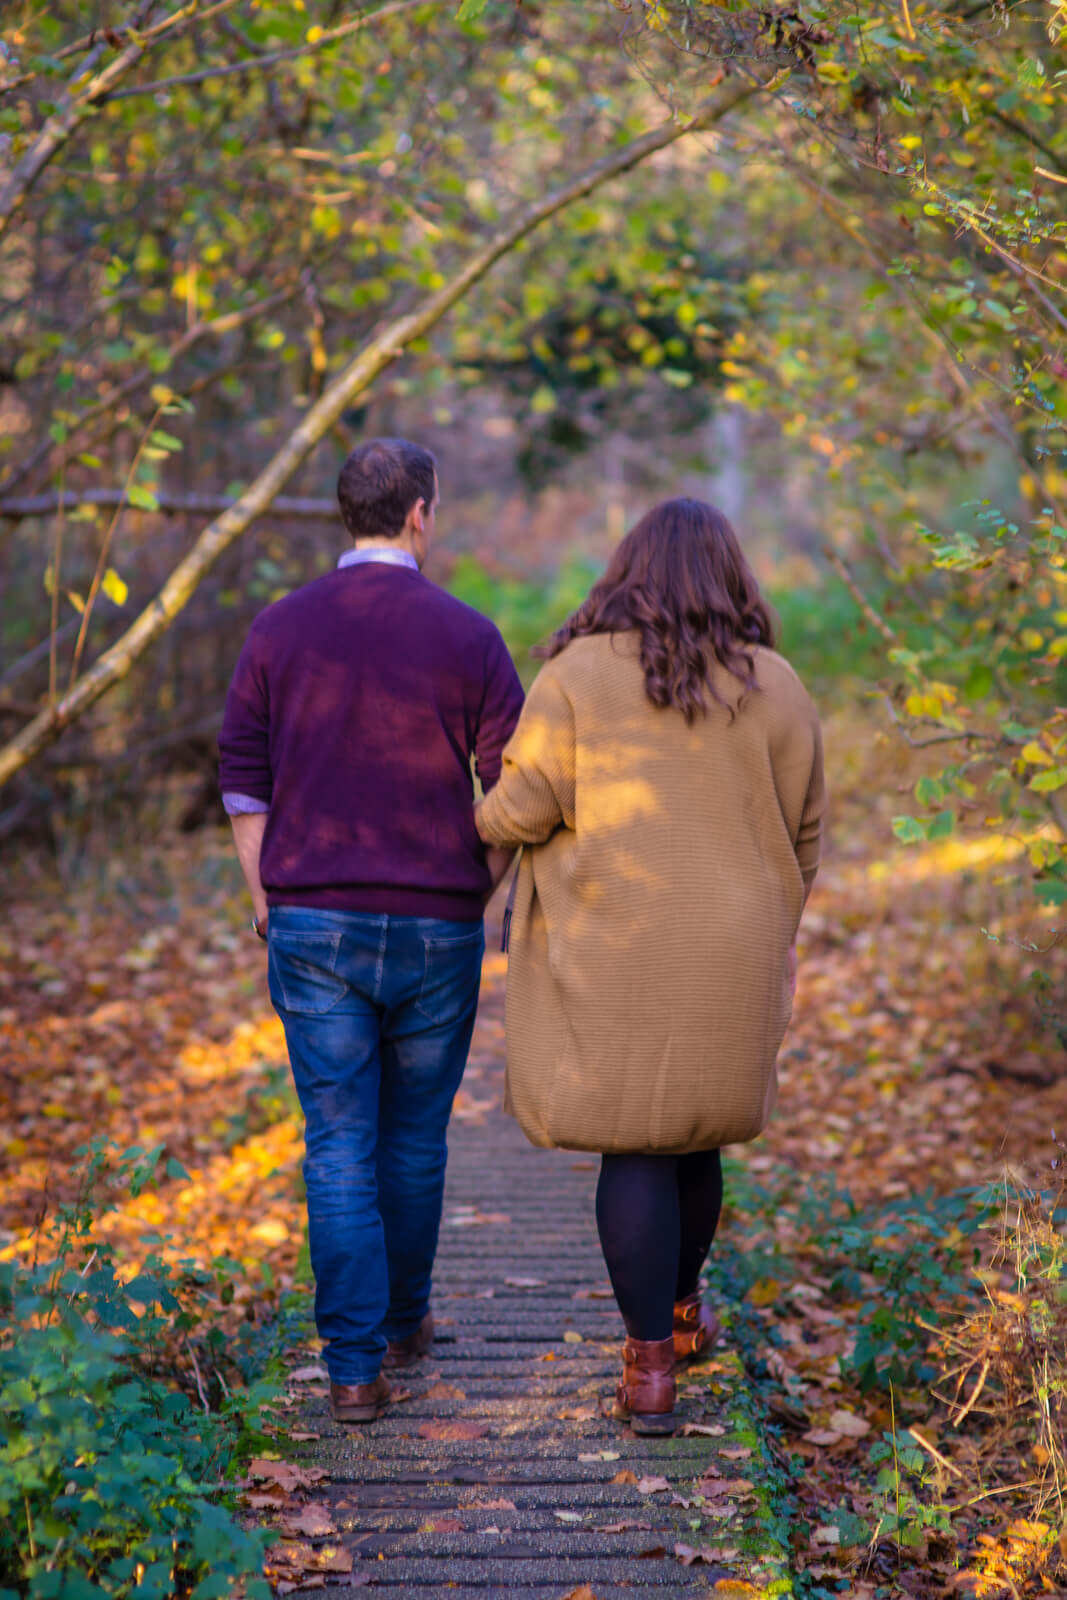 Engaged couple walking on wooden path through autumn trees